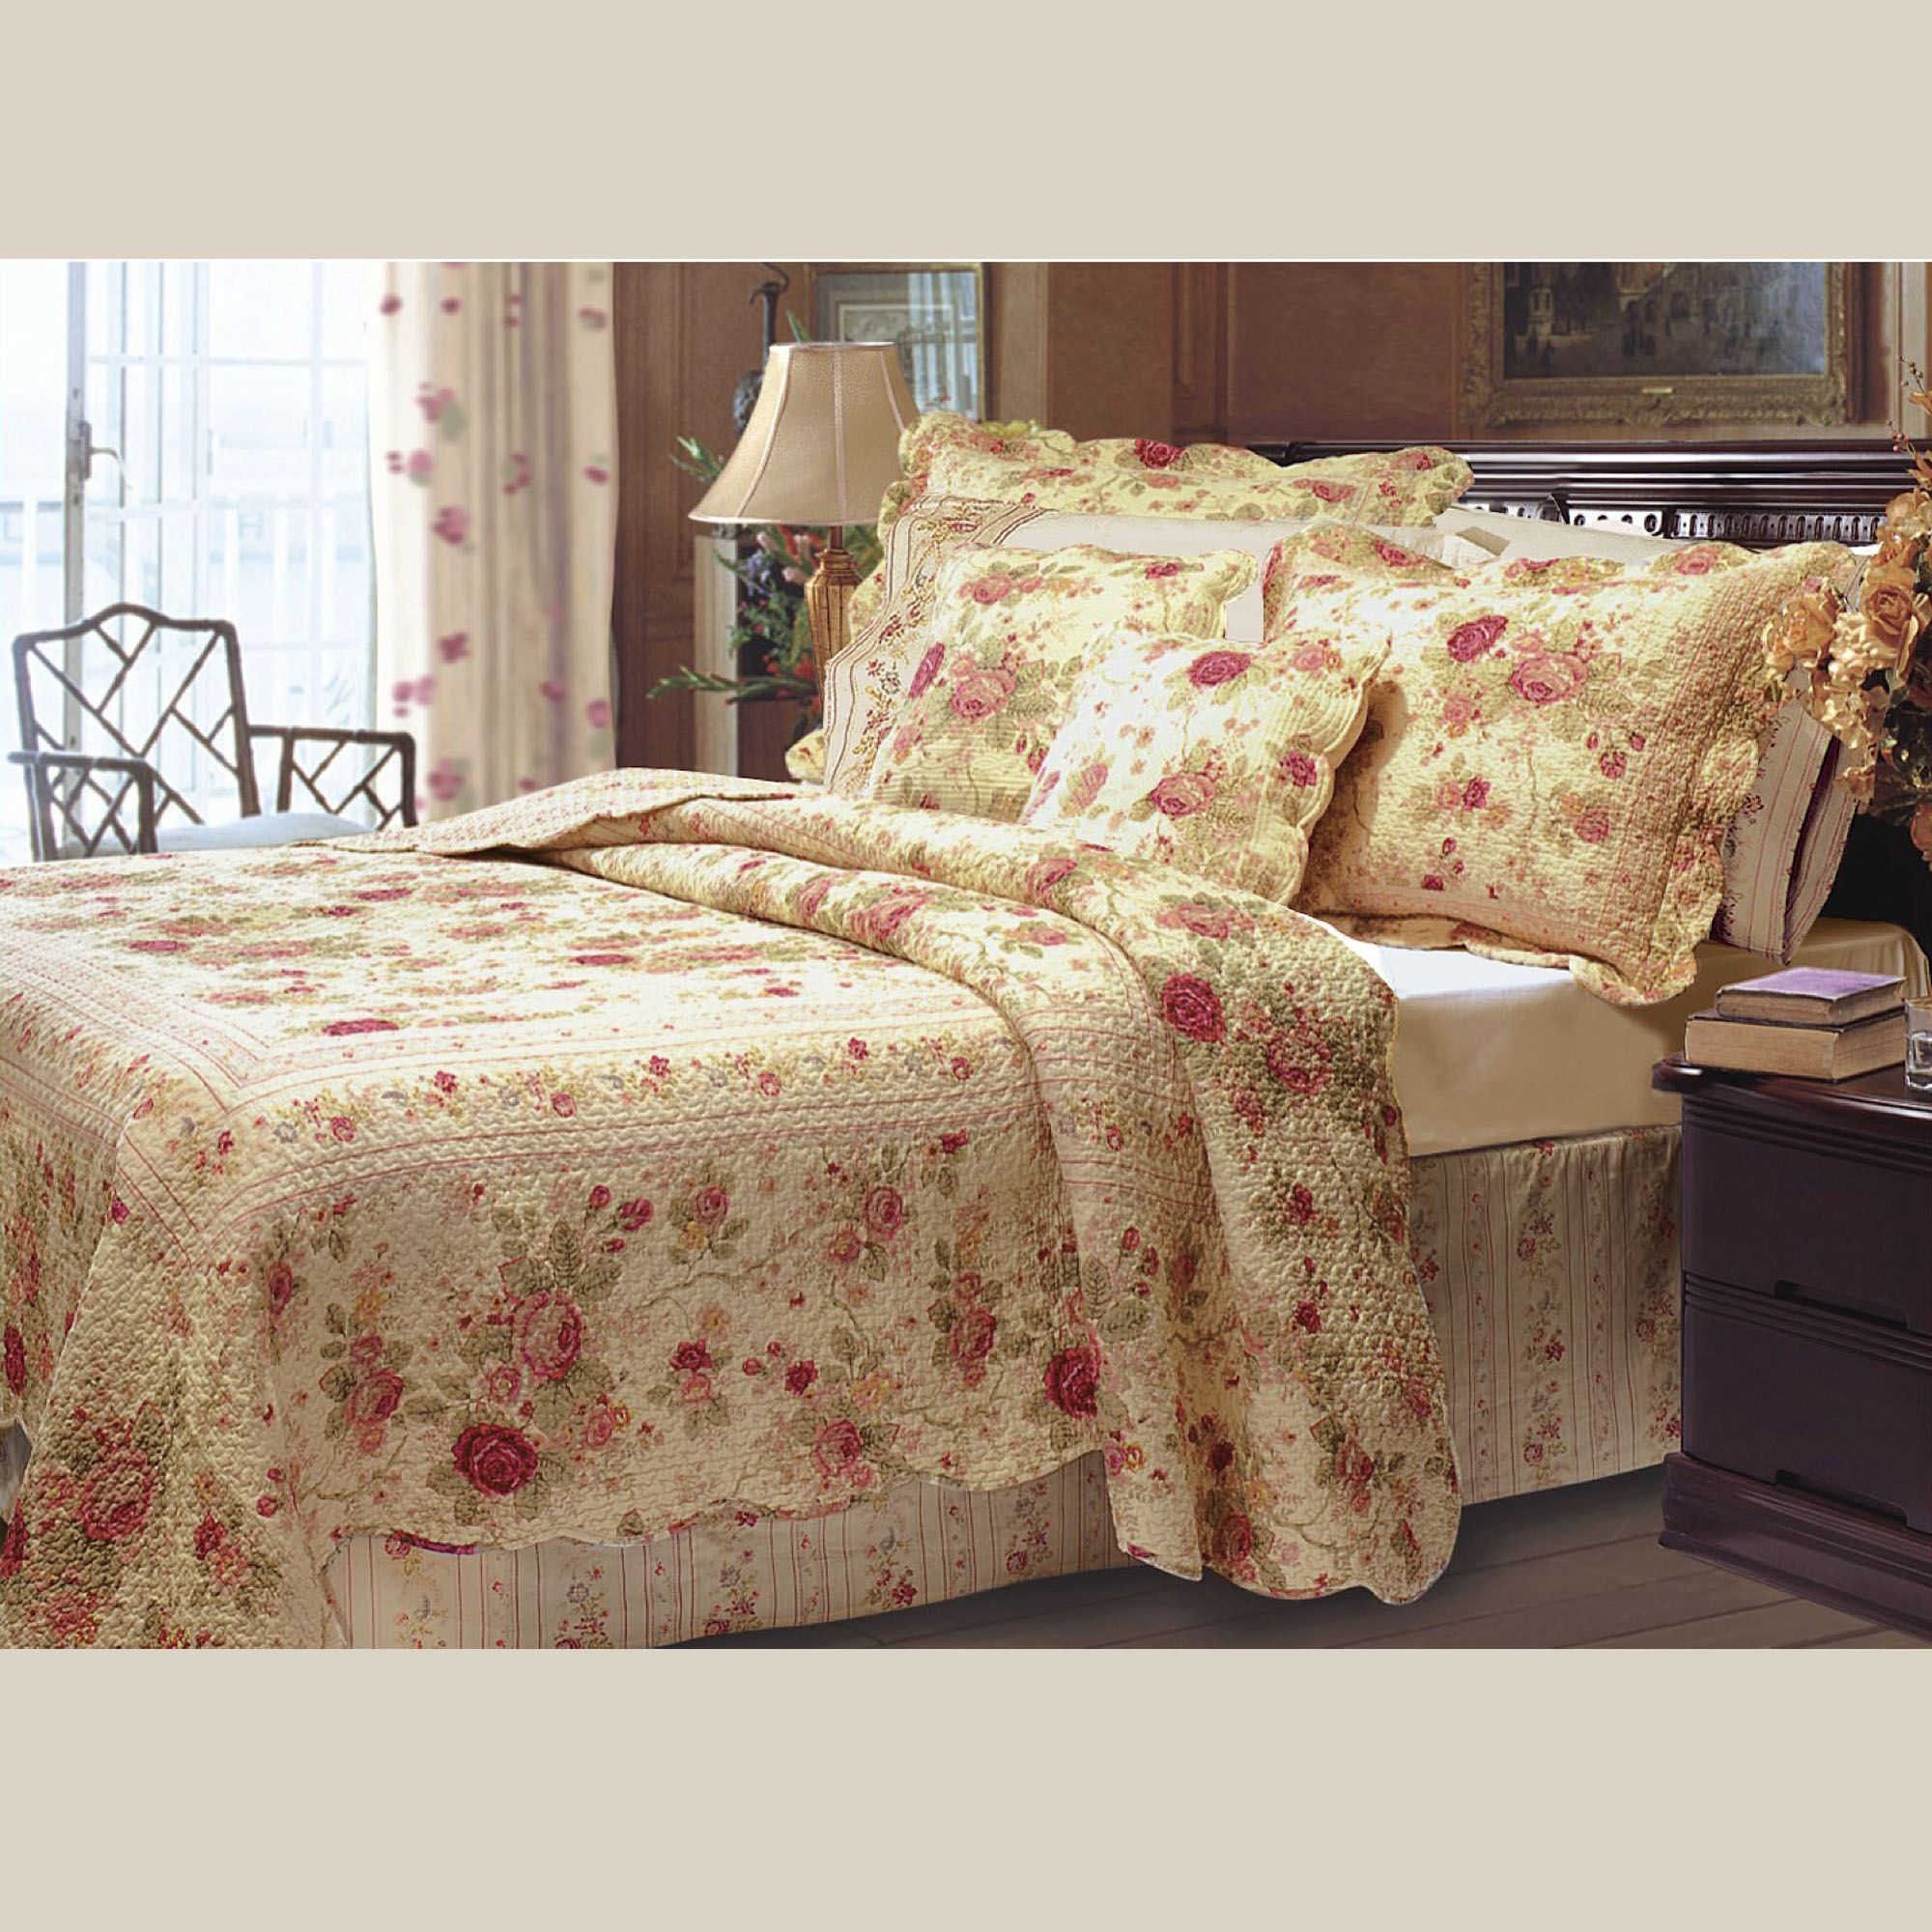 antique rose cotton floral quilt bedding set. Black Bedroom Furniture Sets. Home Design Ideas